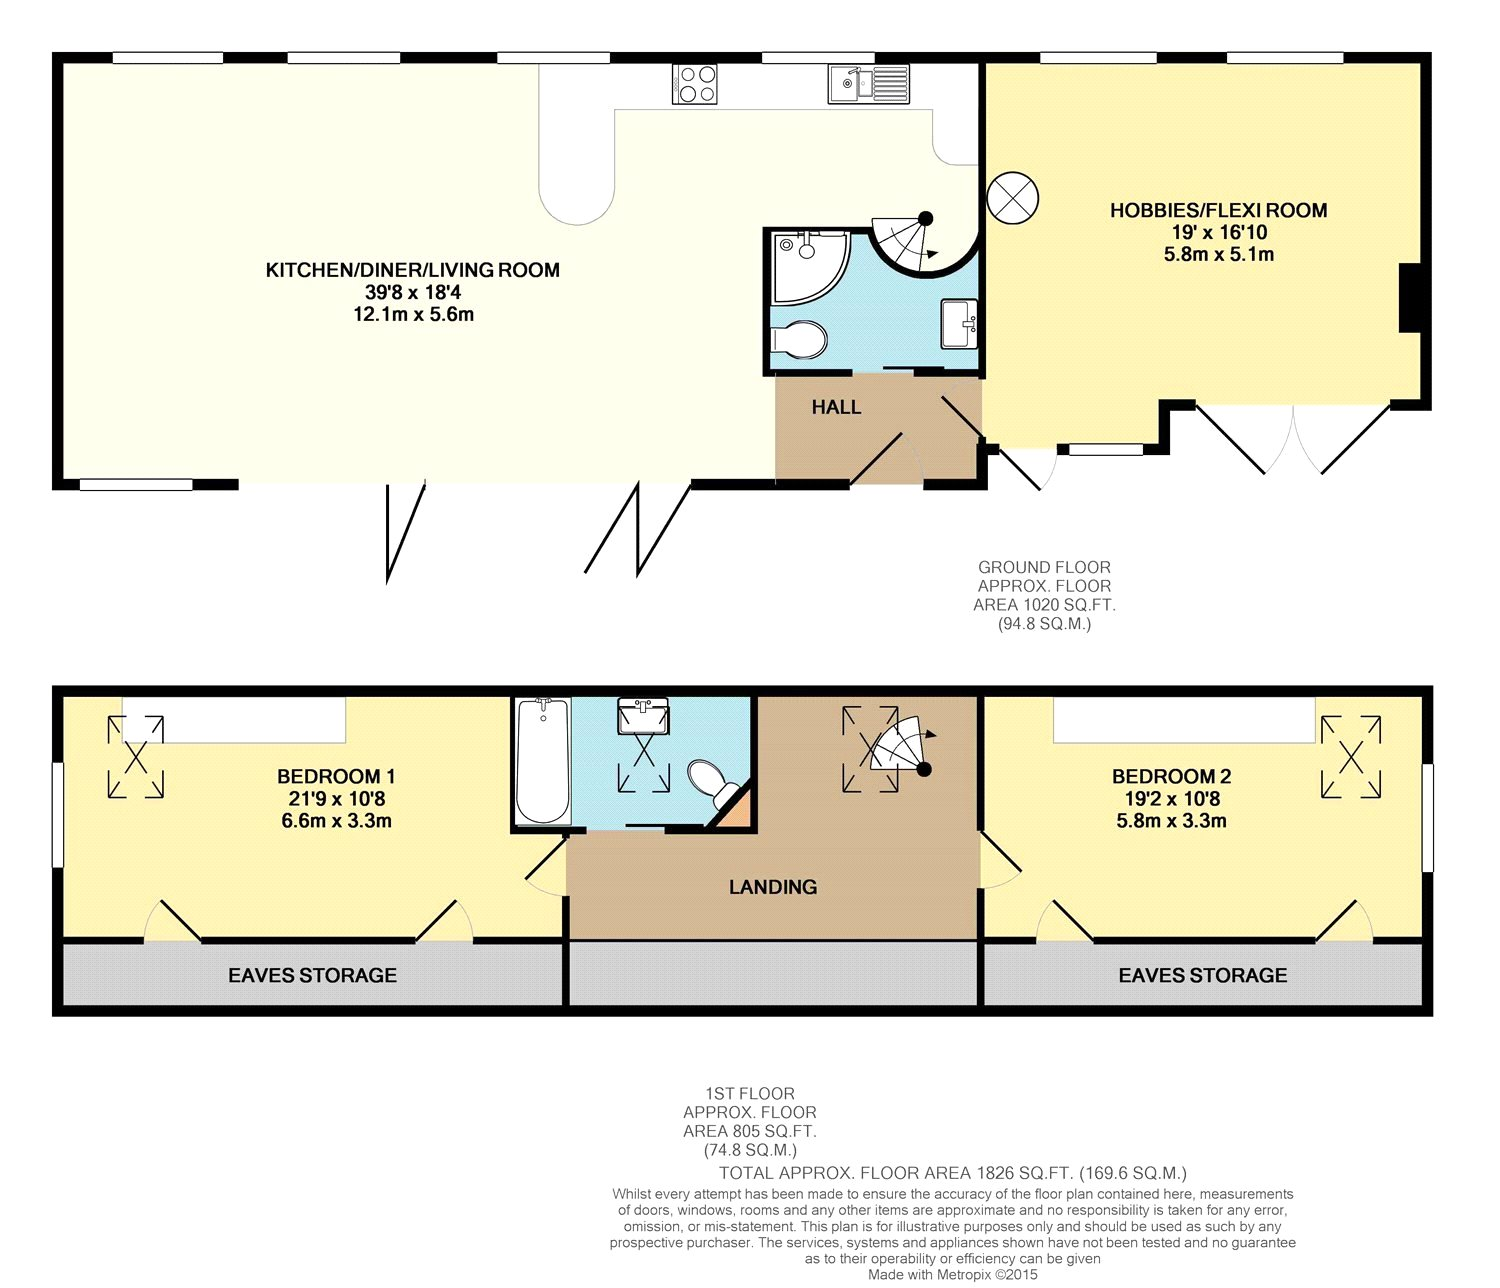 Floorplan of 2 bedroom Barn Conversion for sale